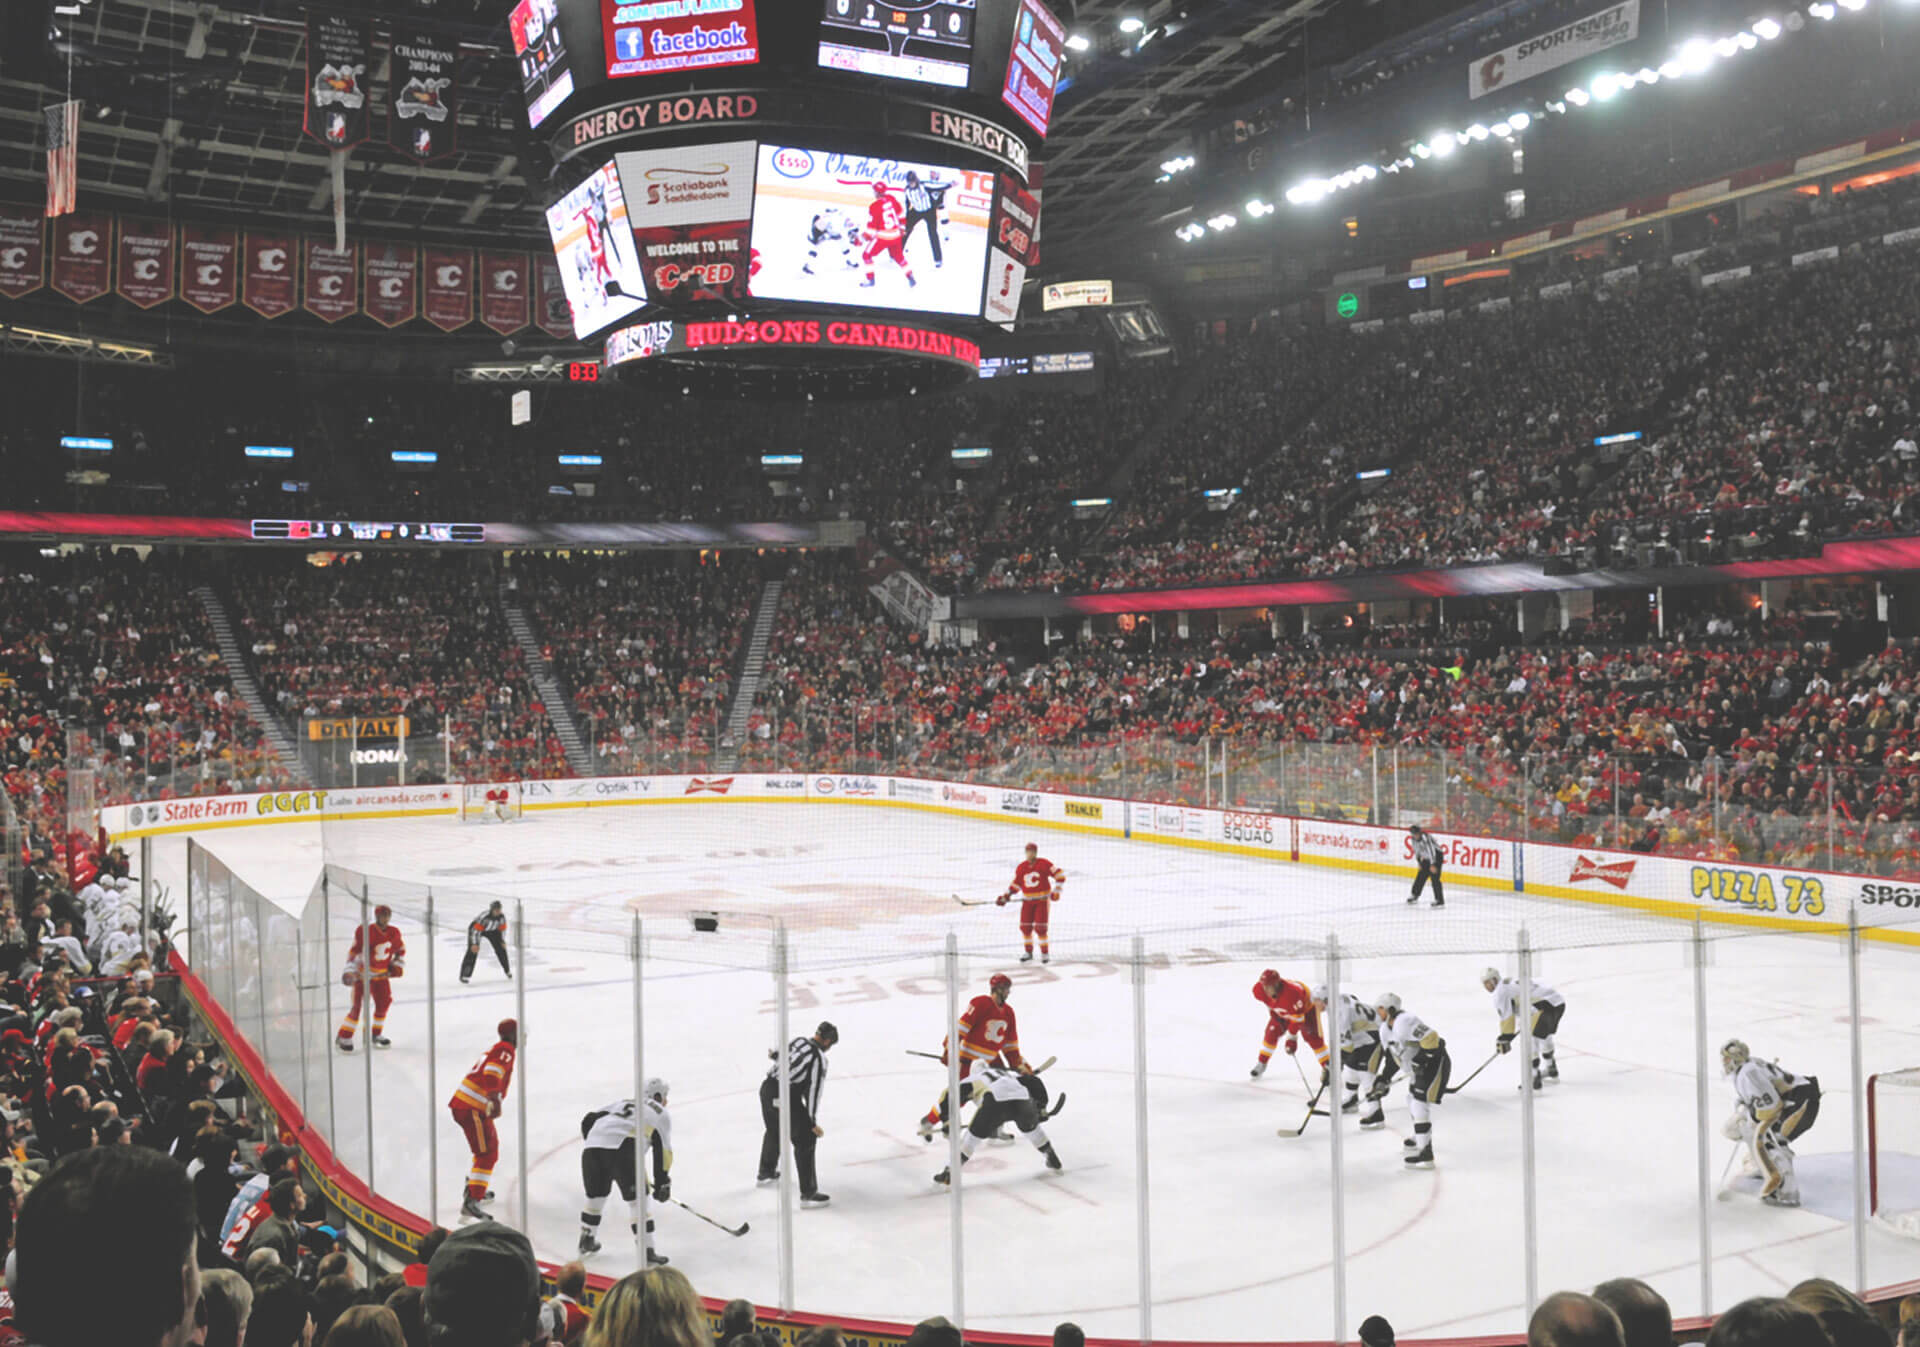 NHL action at the Scotiabank Saddledome.